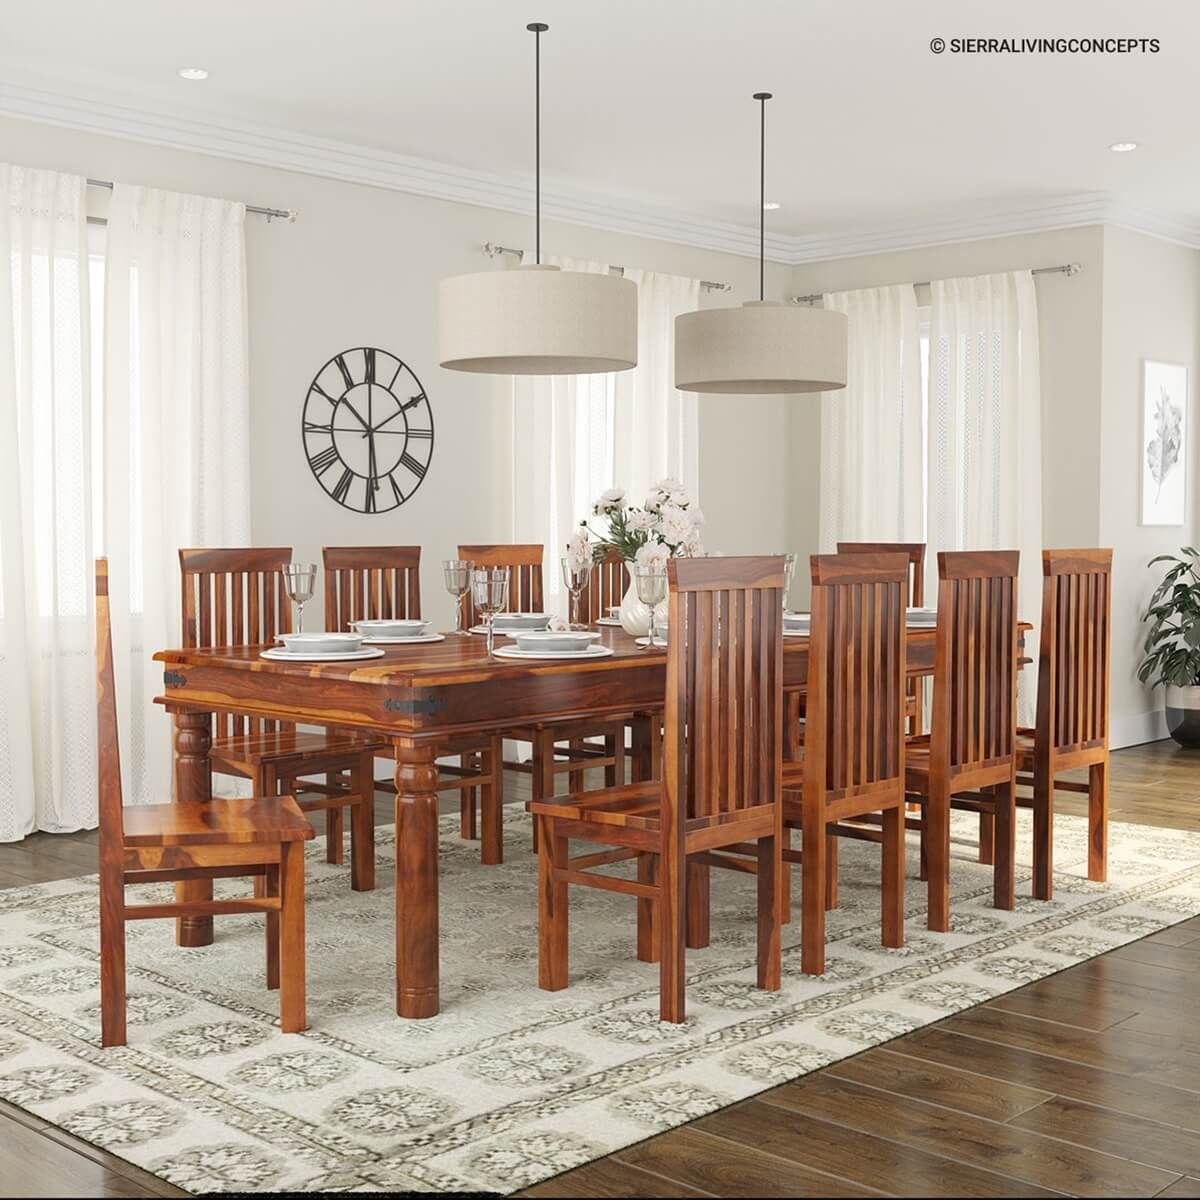 rustic lincoln study large dining room table chair set for 10 people. Black Bedroom Furniture Sets. Home Design Ideas